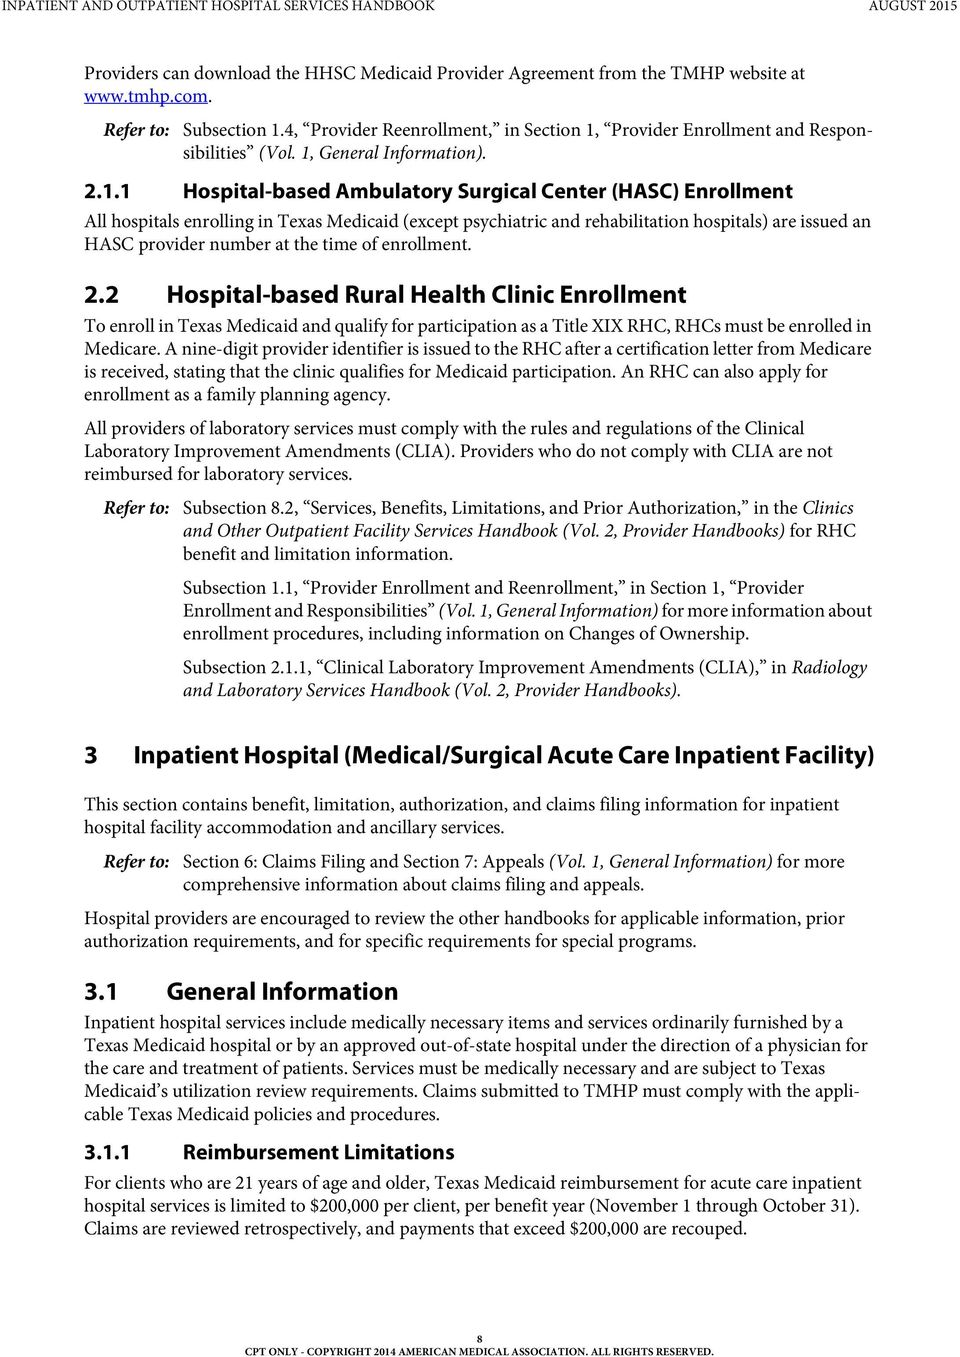 Provider Enrollment and Responsibilities (Vol. 1,